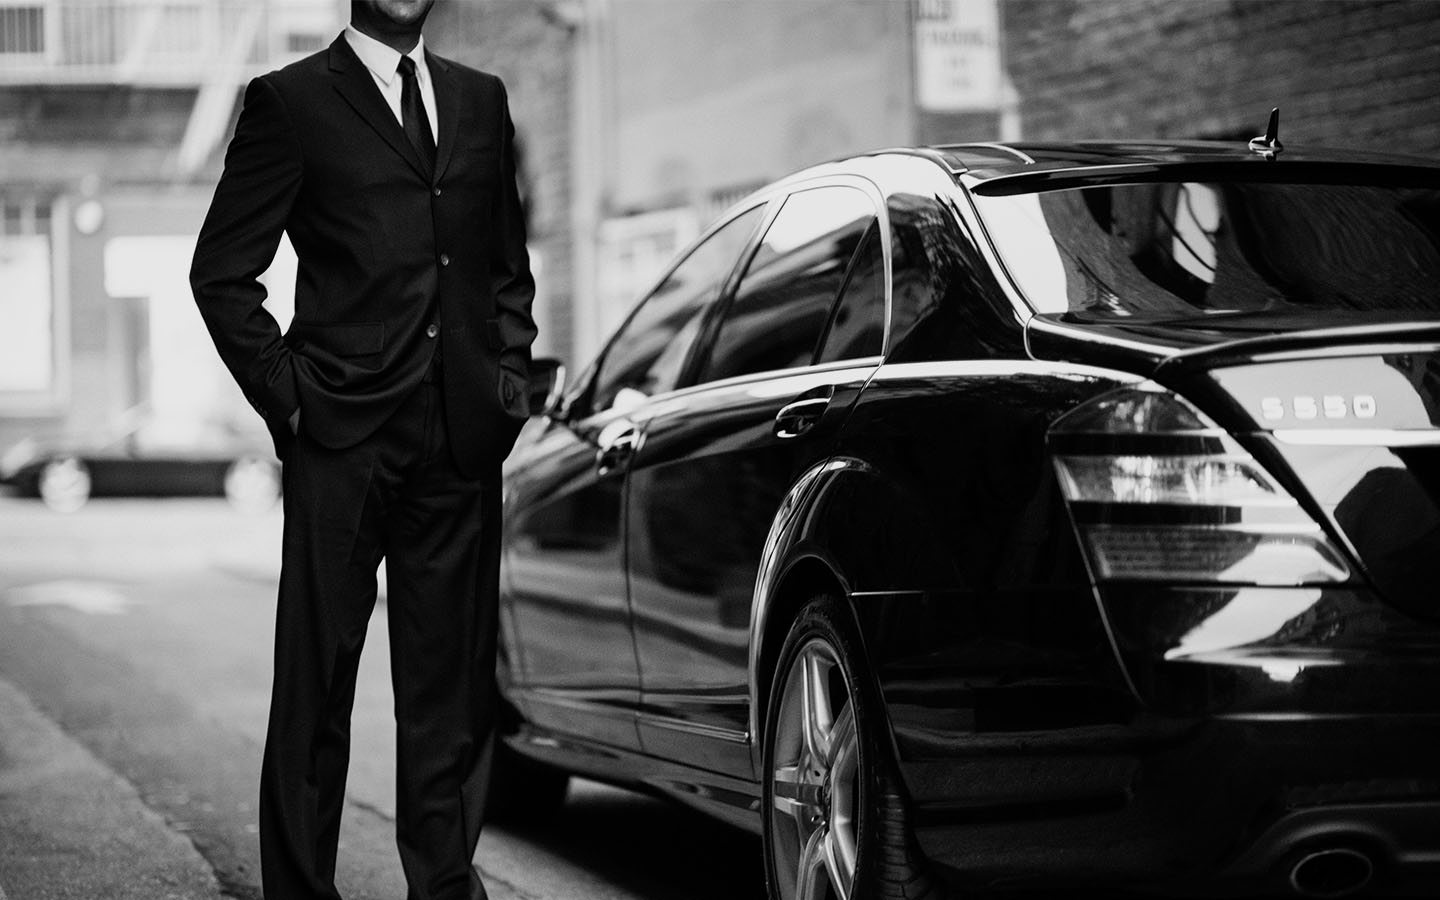 Close Protection officers